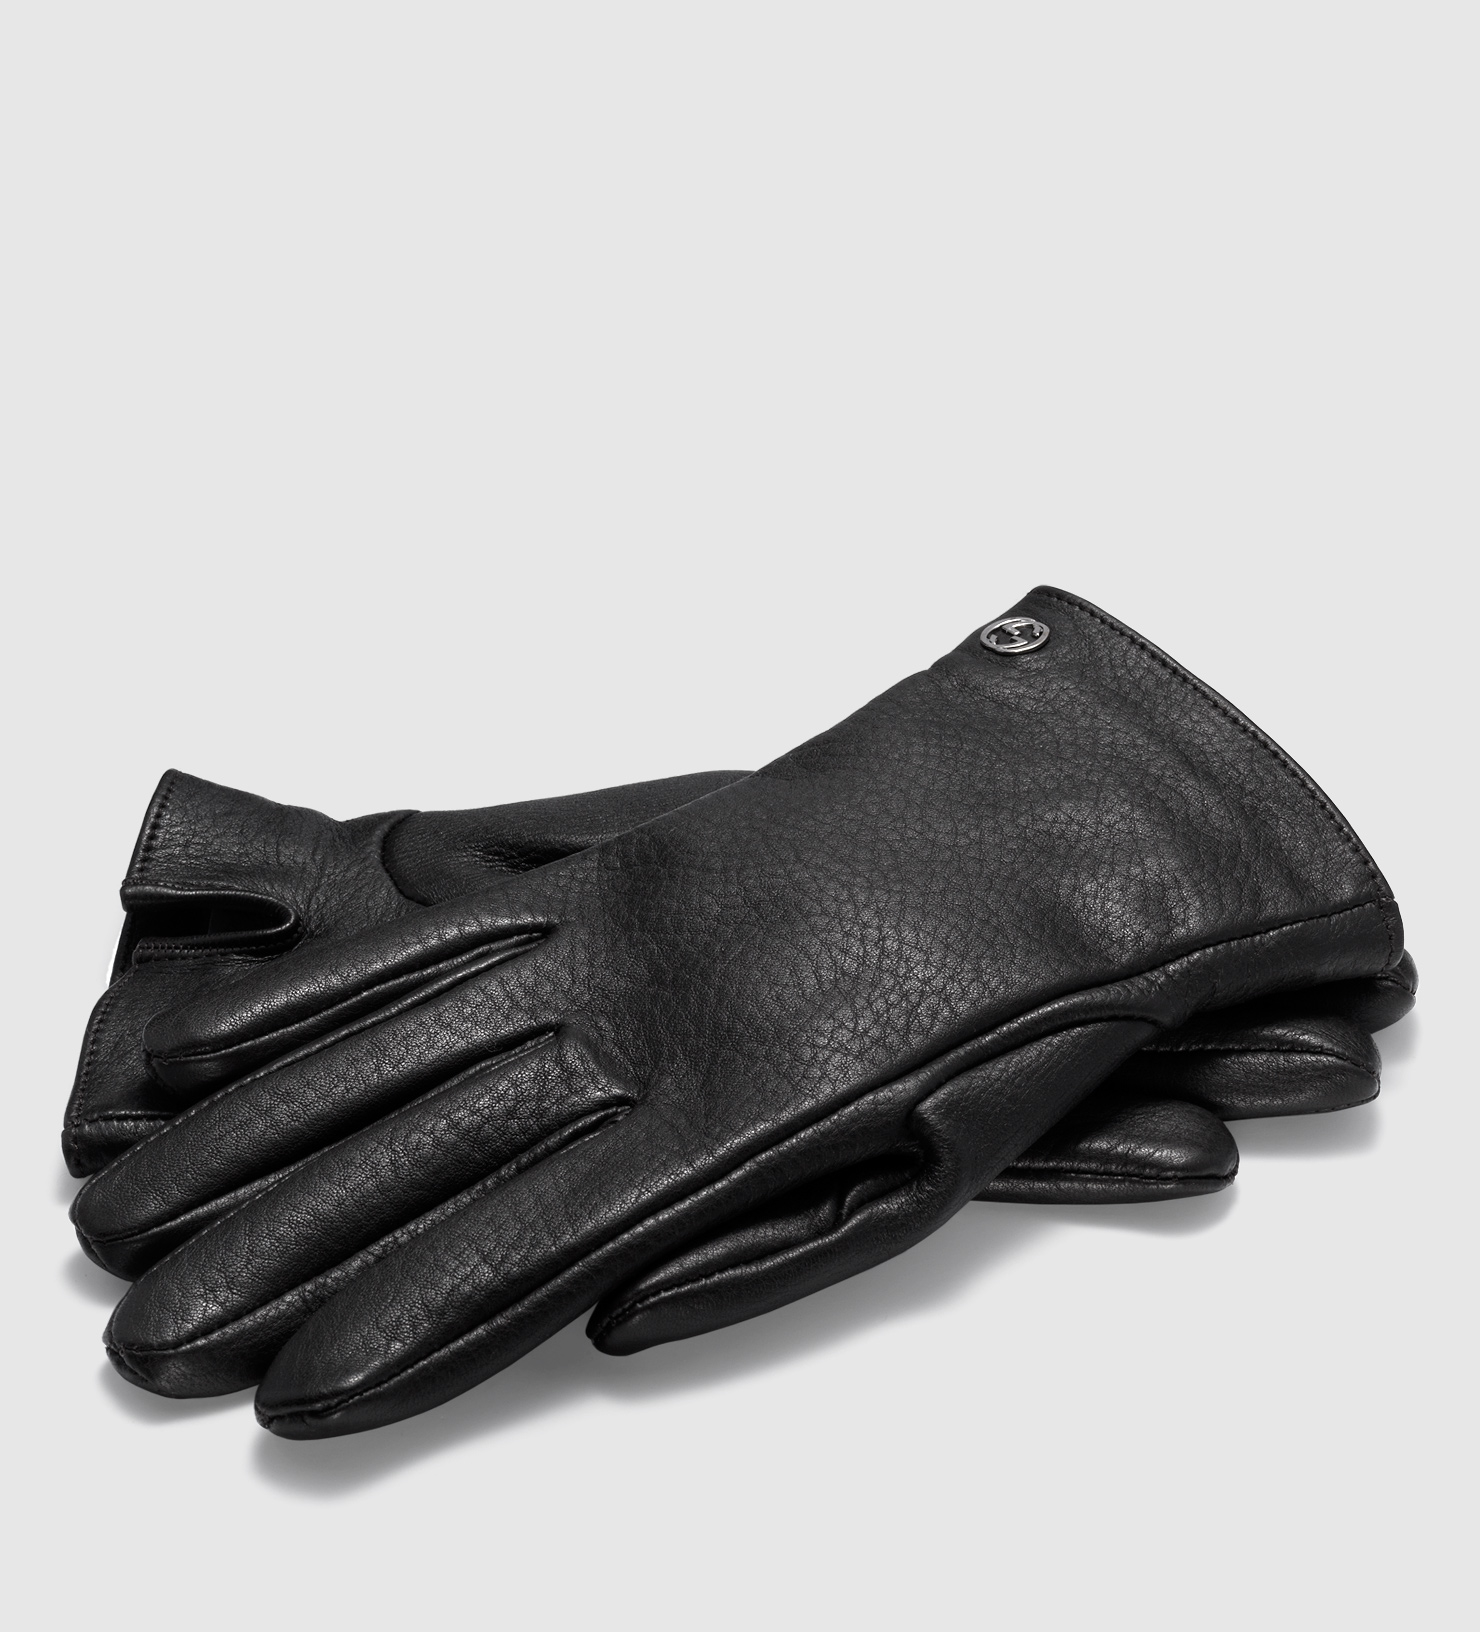 Mens leather gloves rabbit fur lined - Mens Gucci Gloves Gallery Men S Leather Gloves